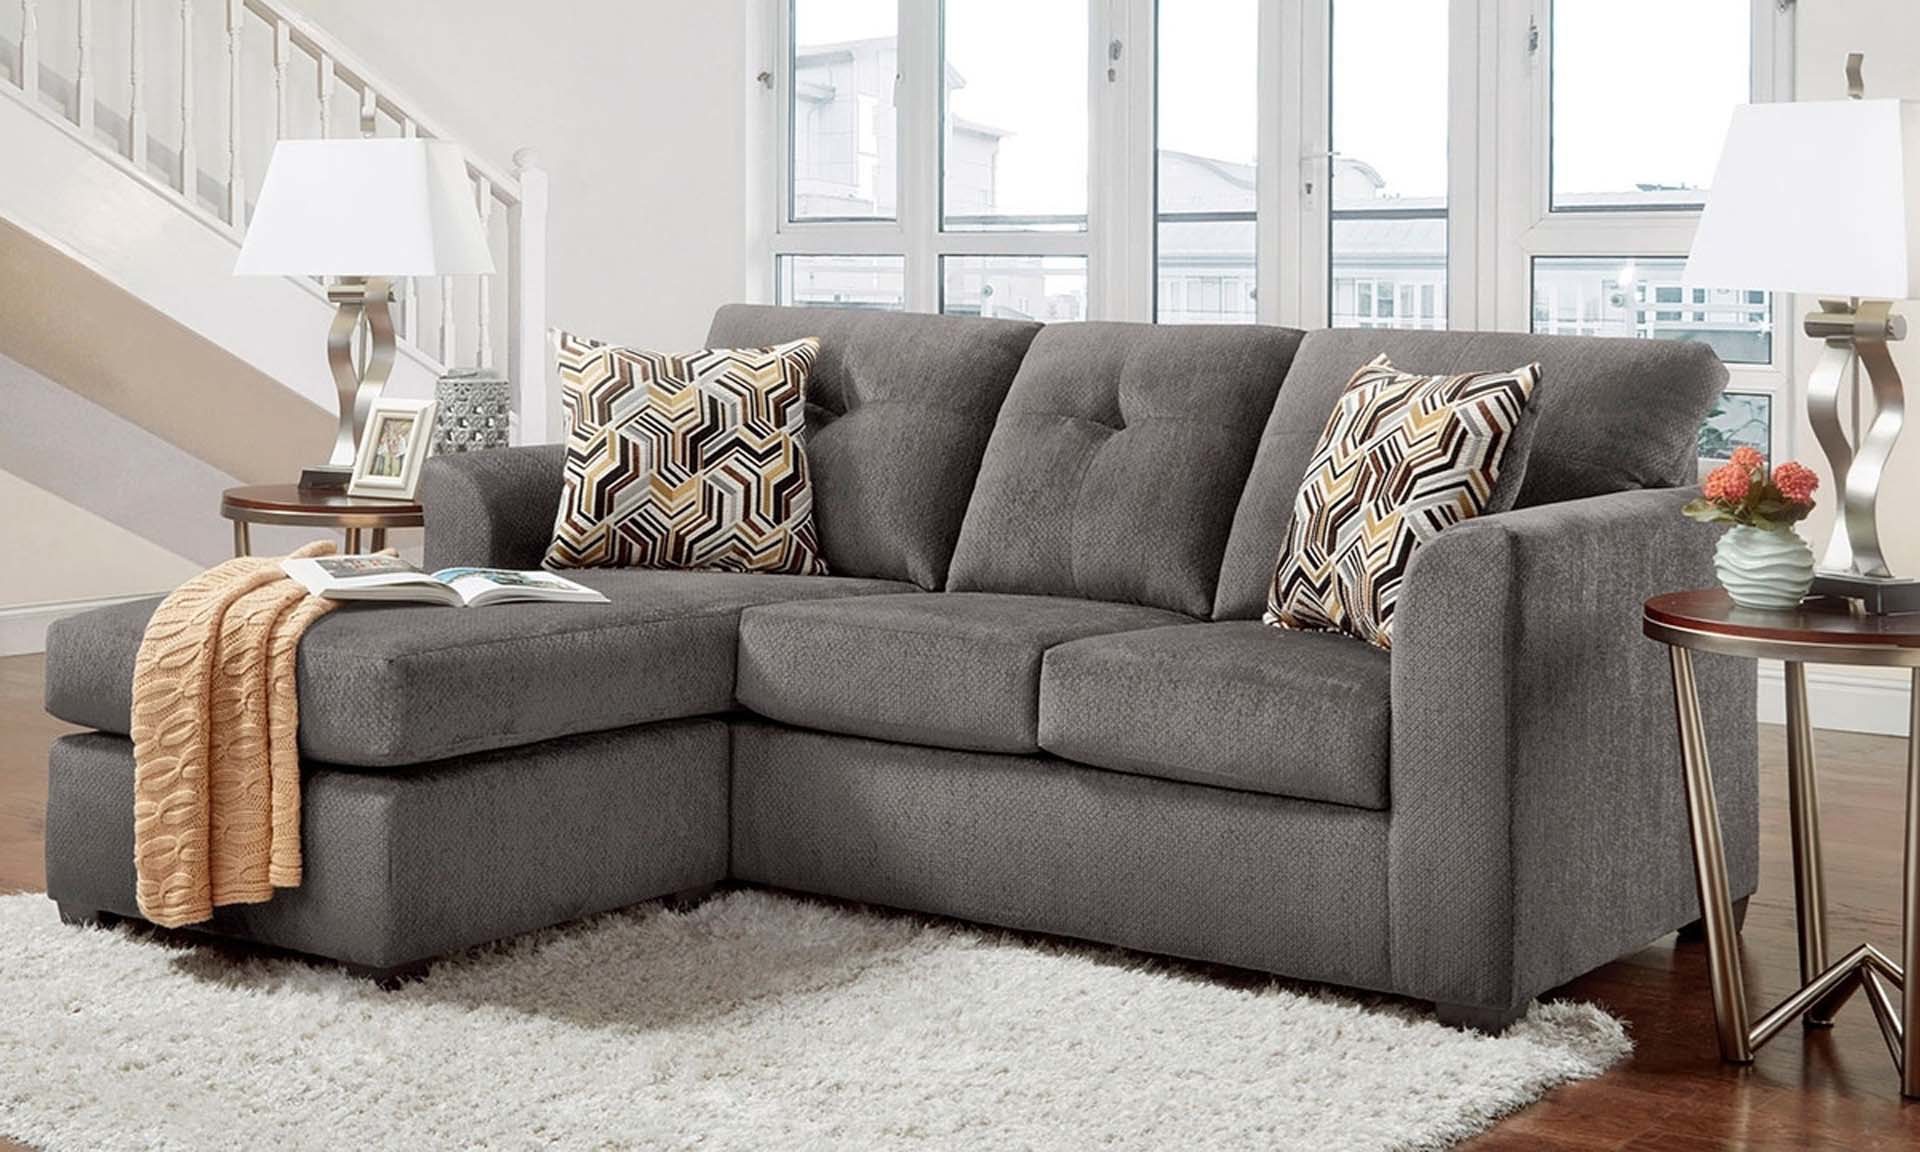 Lounge Couch Kelly Sofa With Chaise In Grey | The Dump Luxe Furniture ...